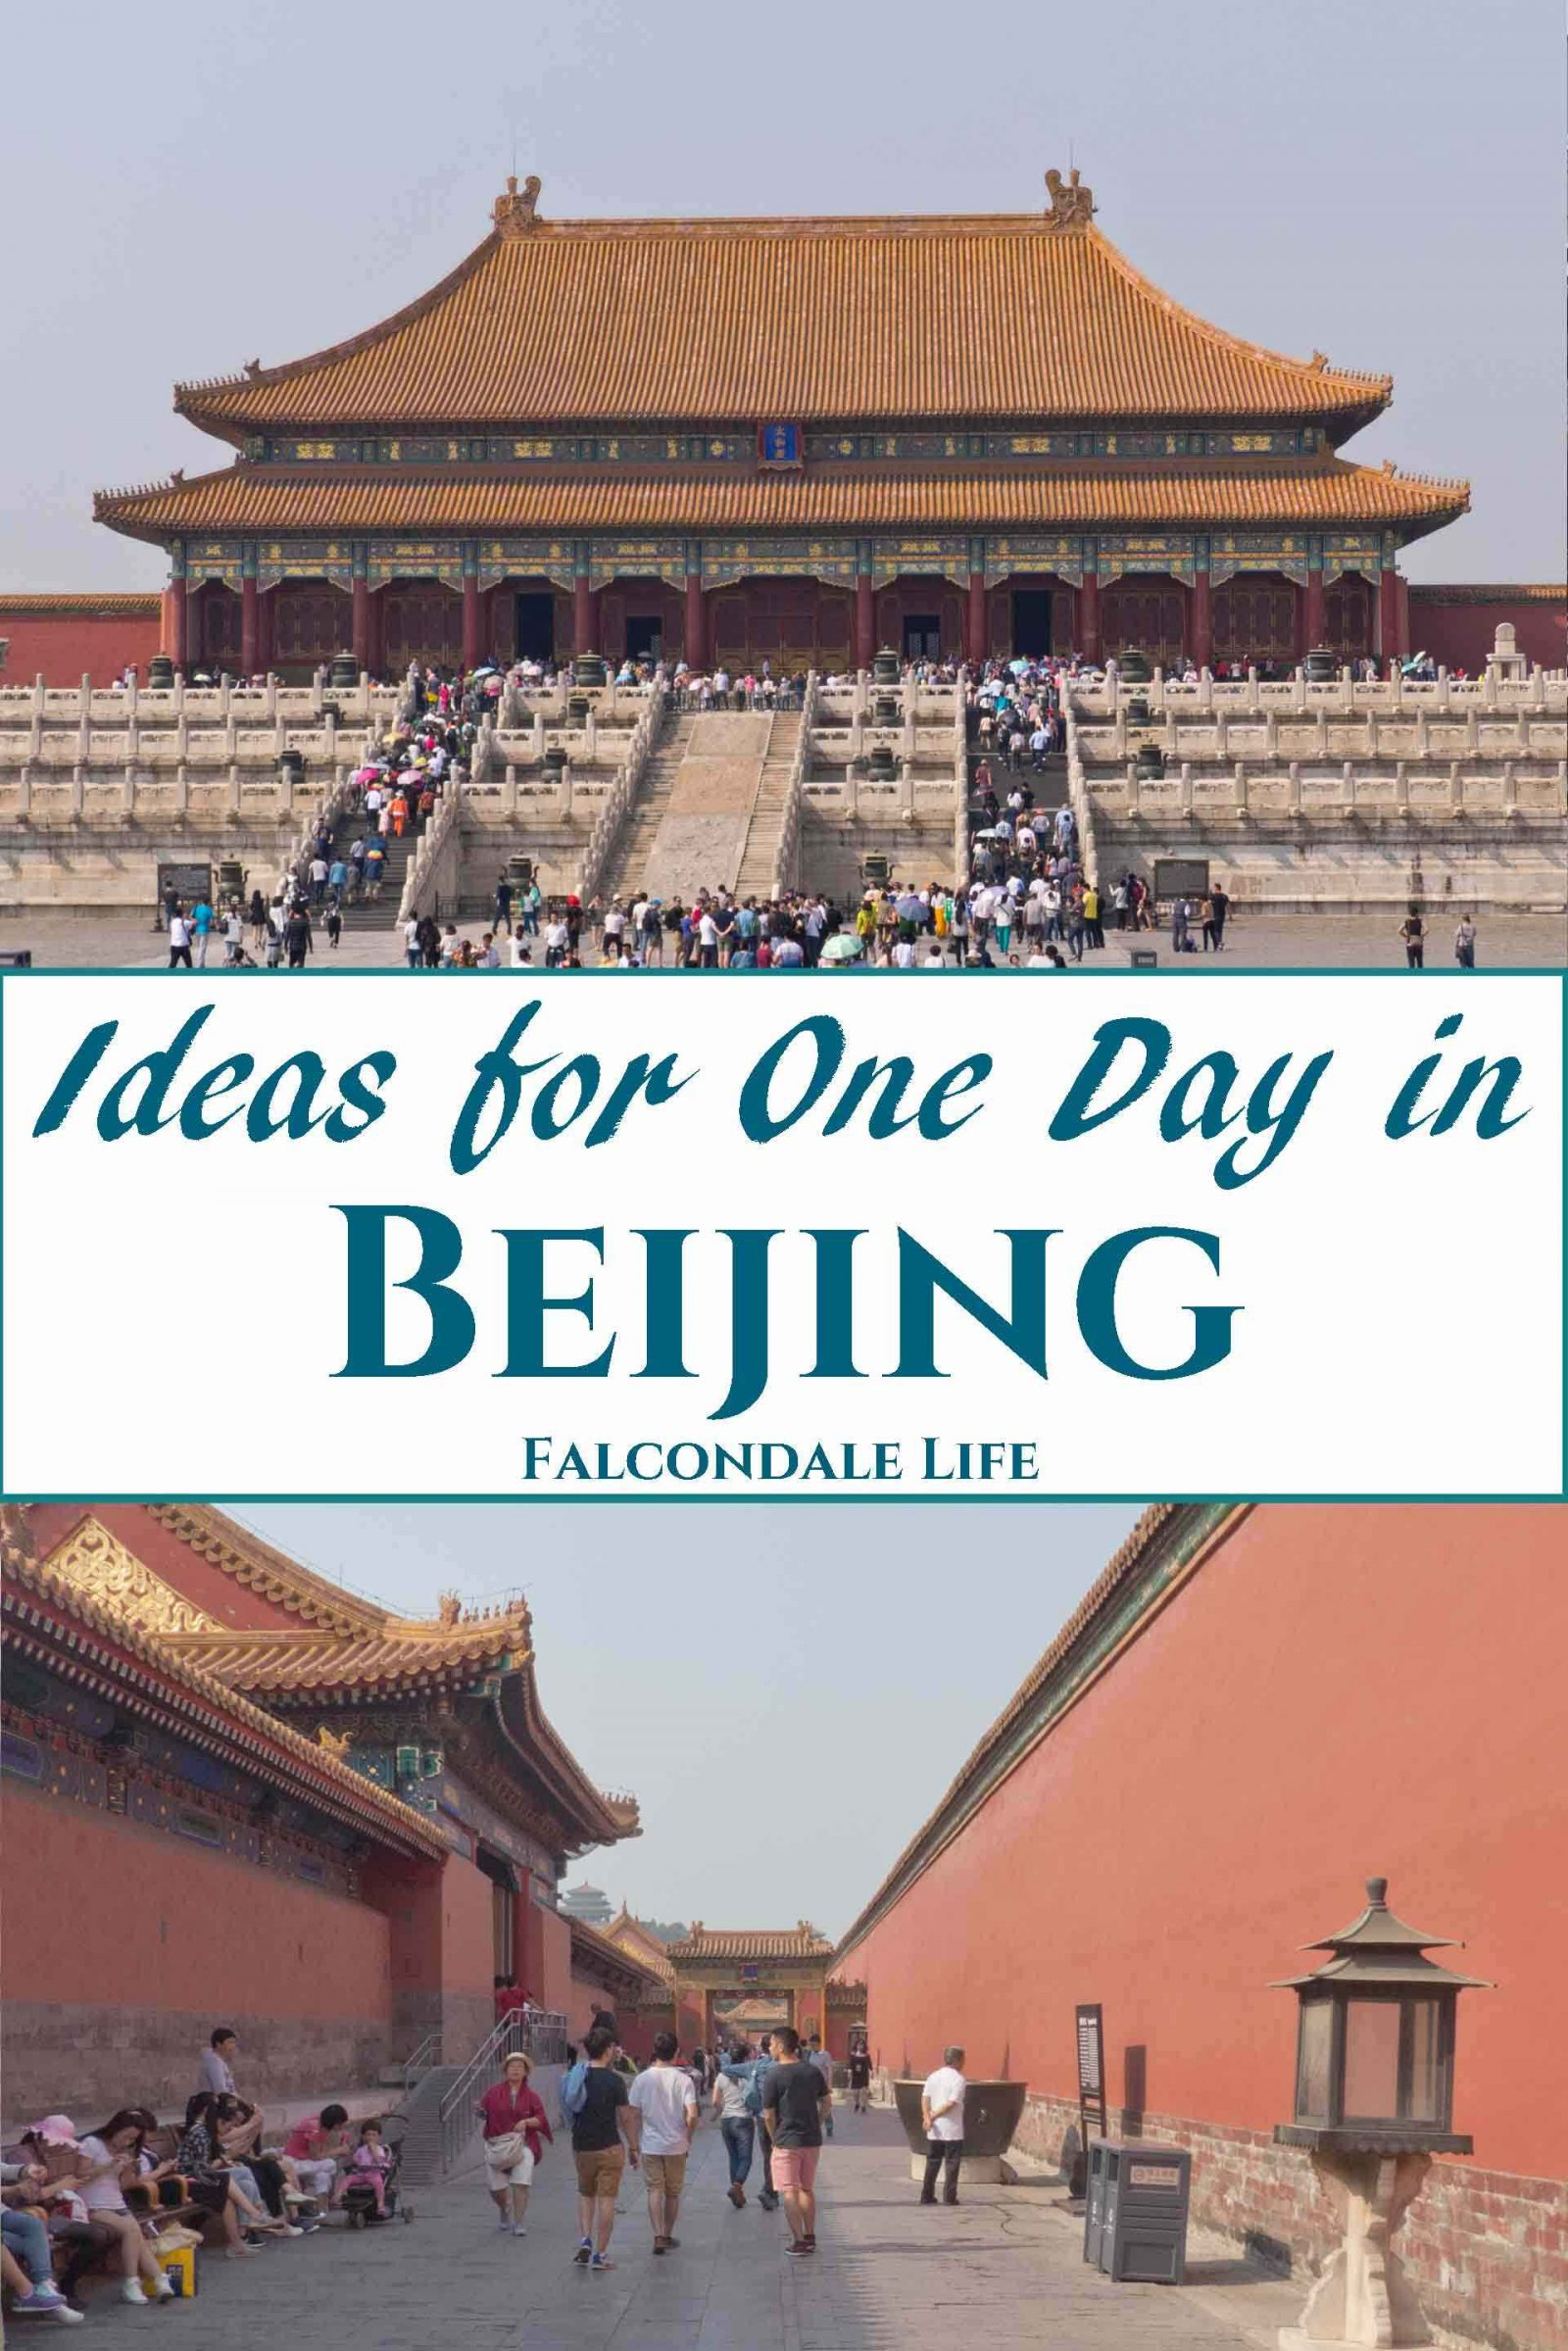 How to spend a day off from business travel in China, what can you fit in to one day in Beijing? Ideas to visit the sights, attractions and experiences with tips to take better photographs. Visit the Forbidden City. You may leave the city with a wish to come back for a proper holiday. Image description: The Forbidden City, two views and blog title.